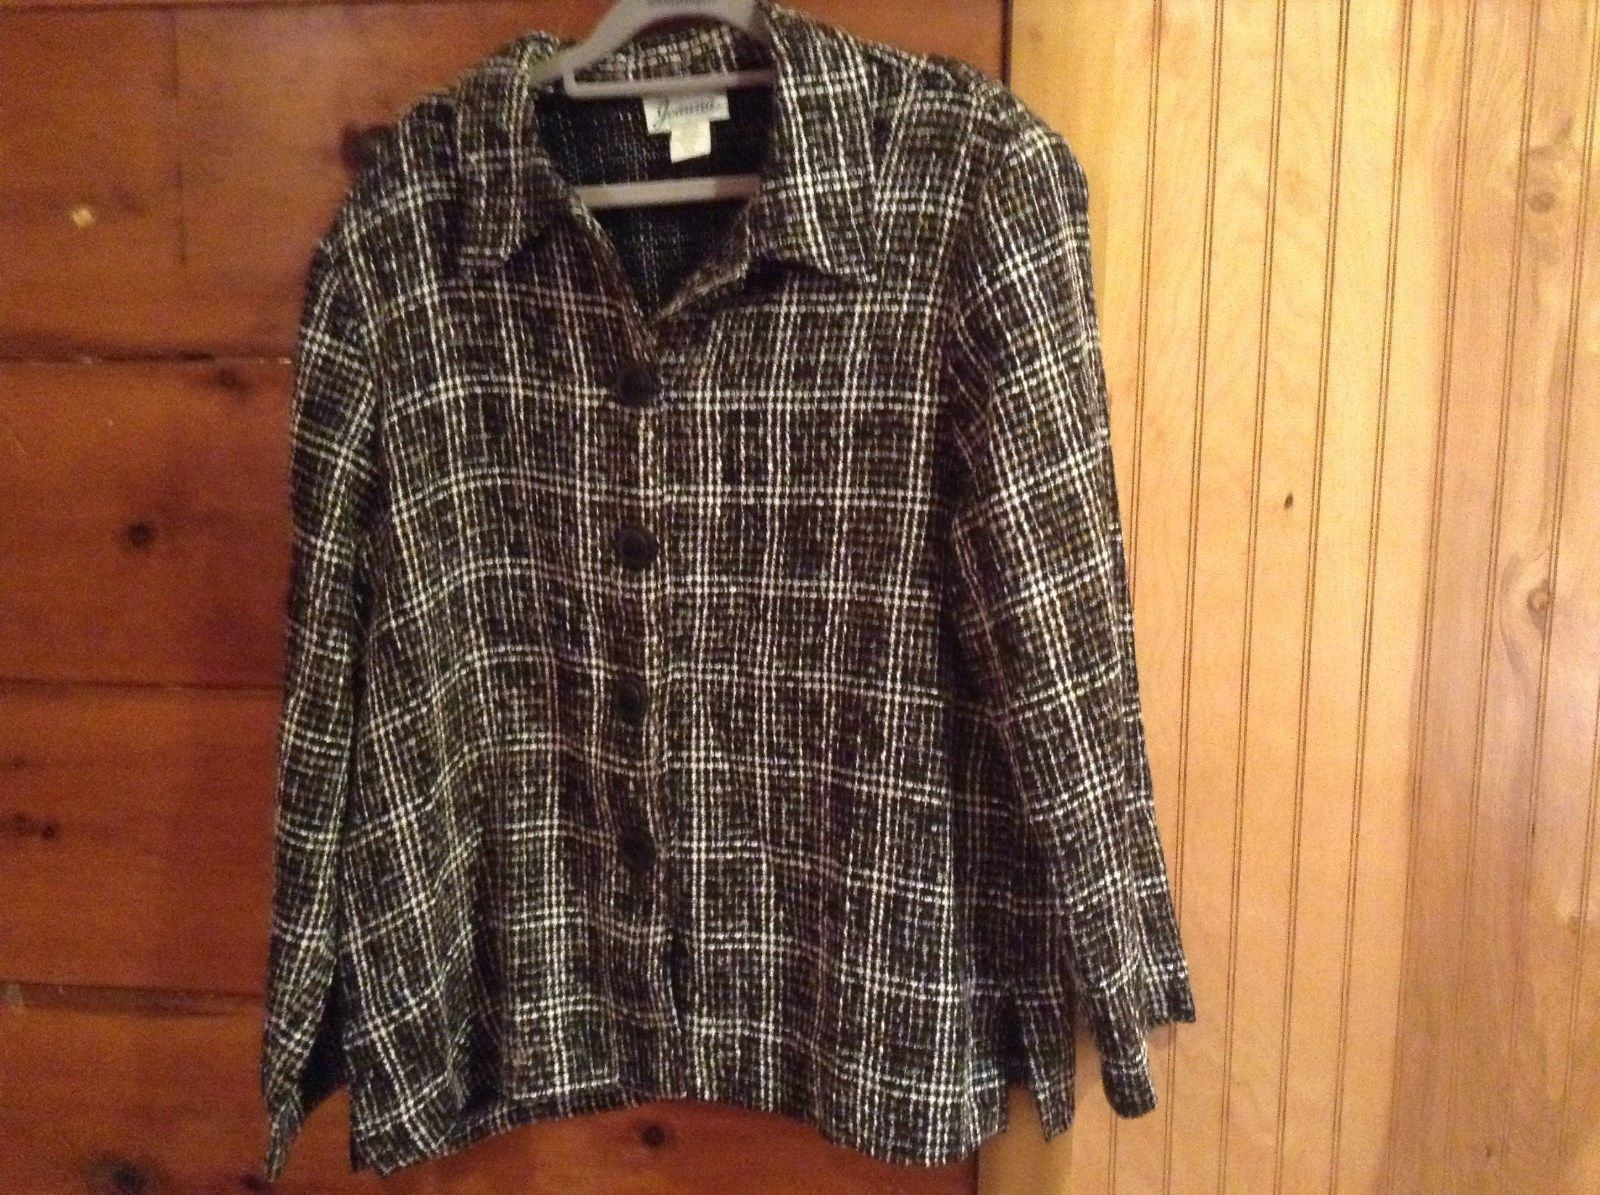 Joanna Multicolored Black Brown White Blazer Coat Shoulder Pads Size XL